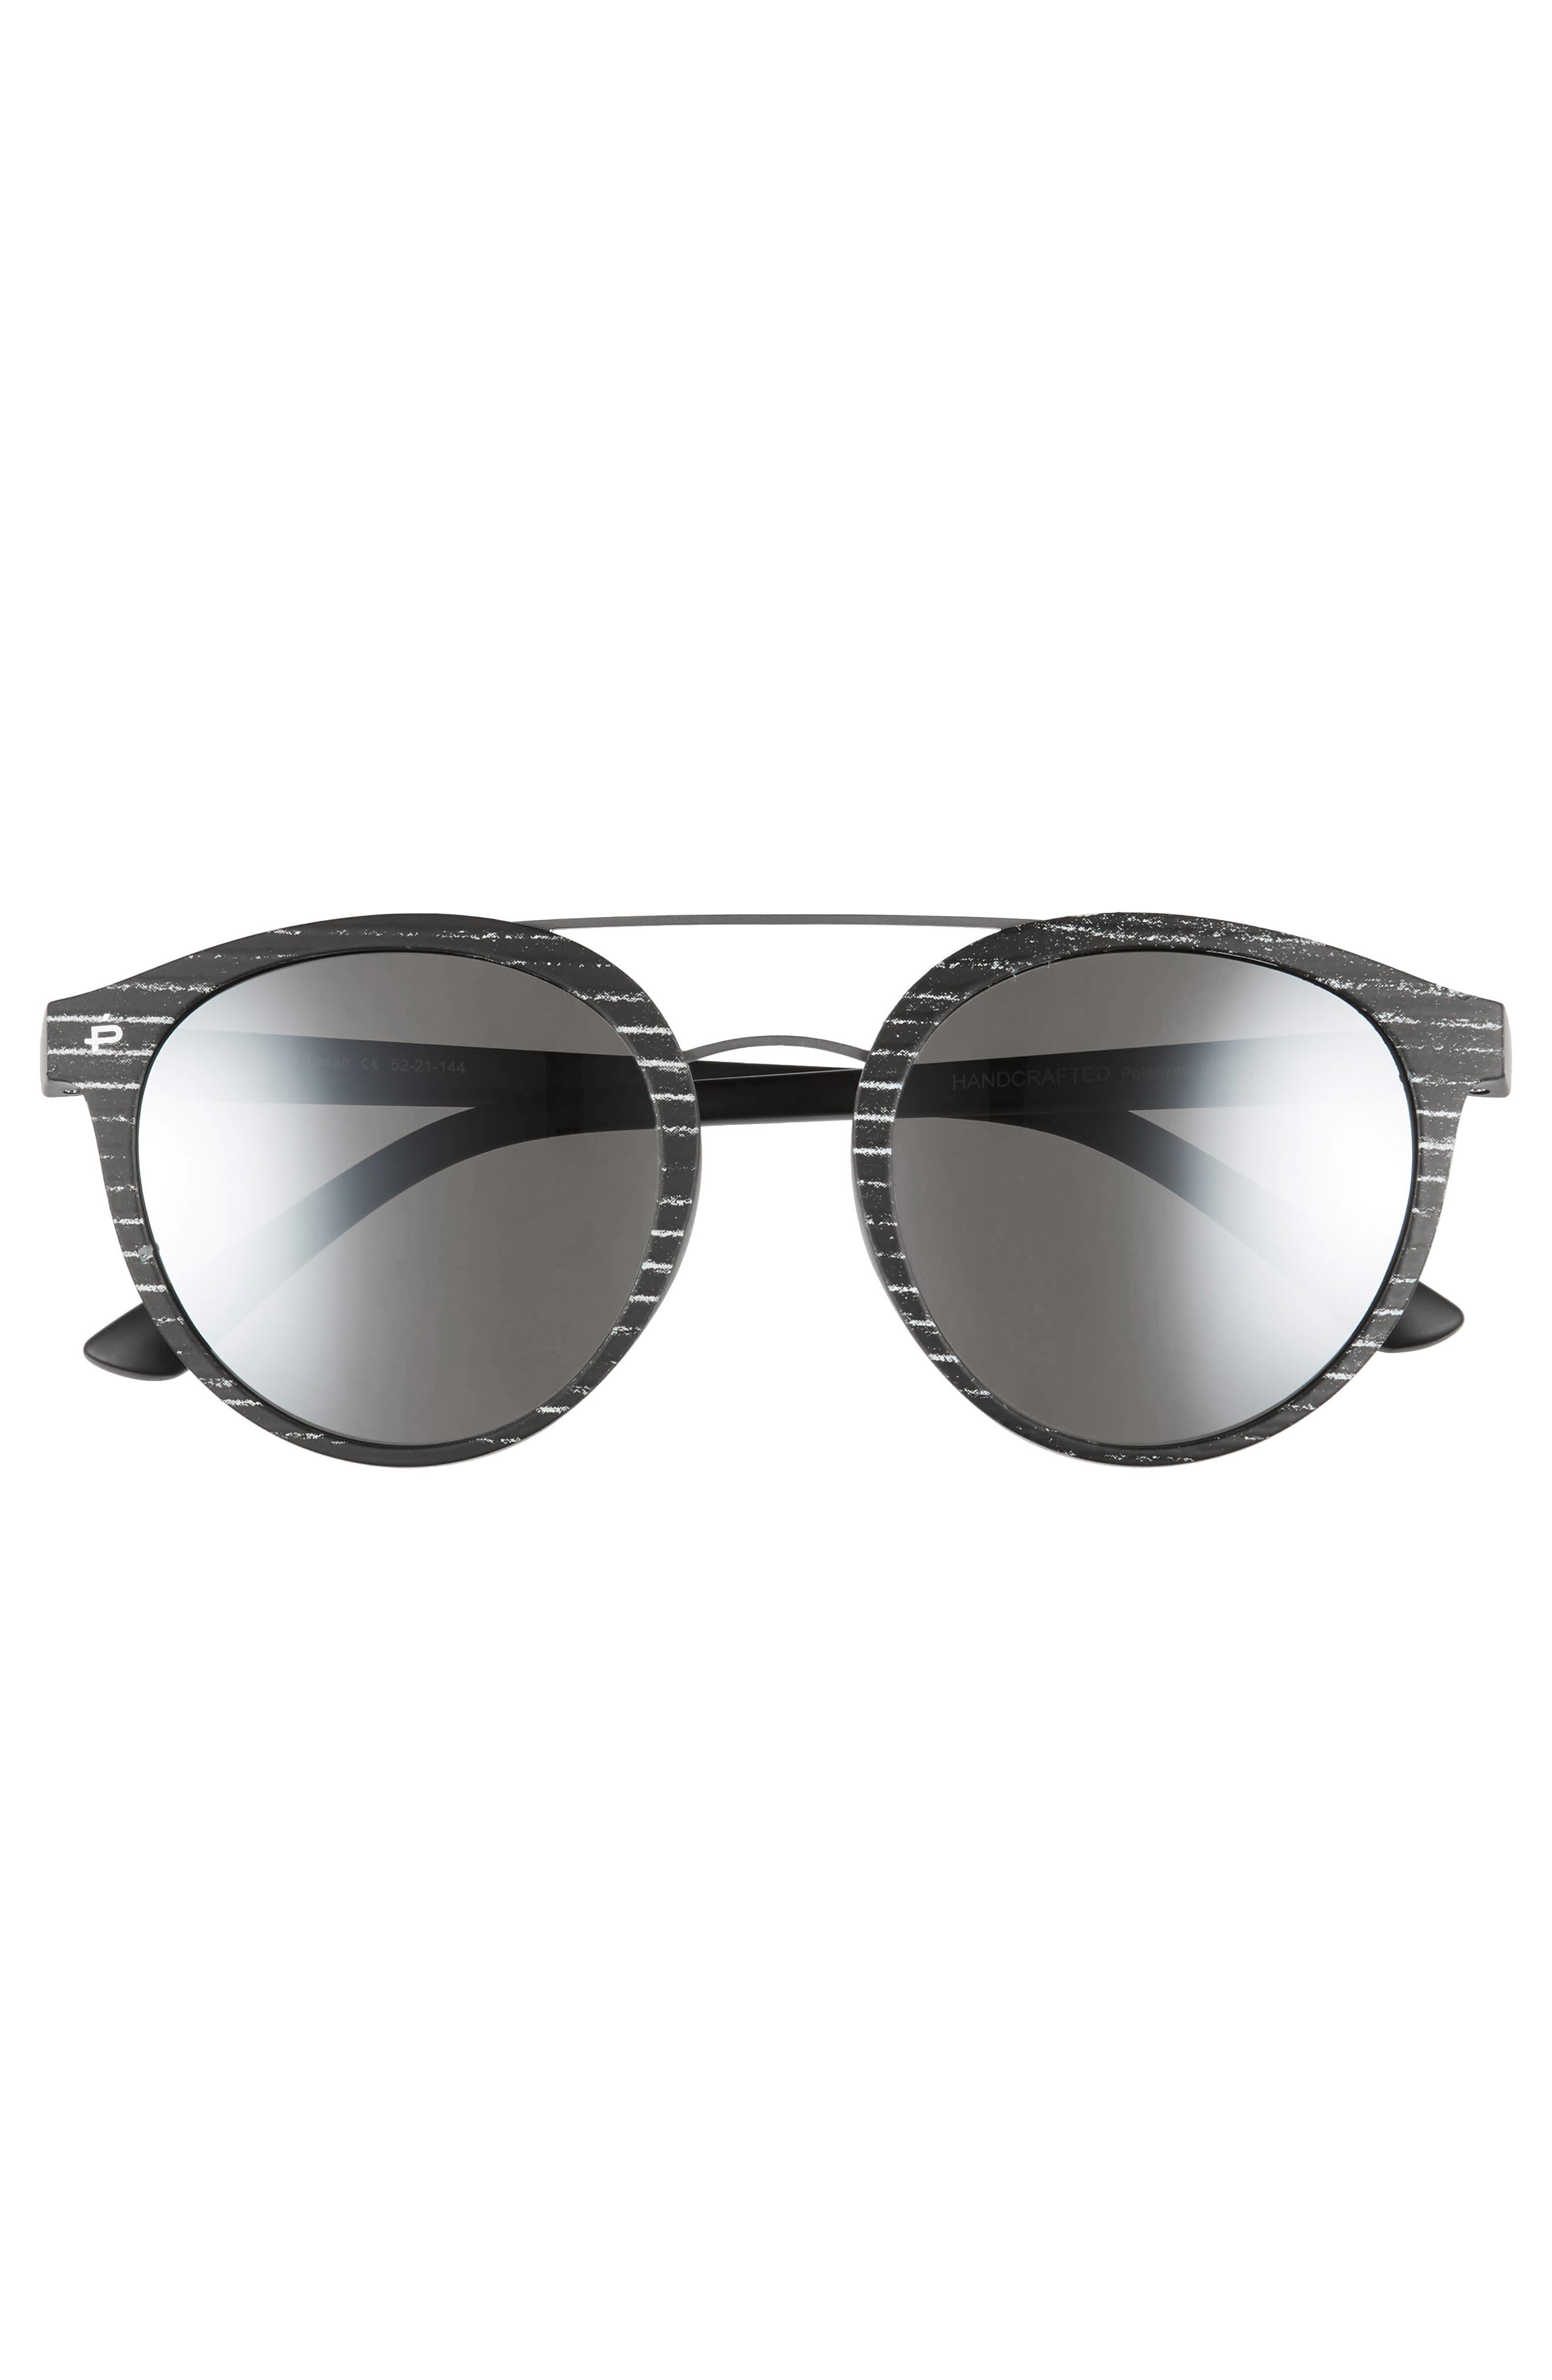 Privé Revaux The Texan 52mm Sunglasses,                             Alternate thumbnail 3, color,                             MATTE BLACK / PAPER